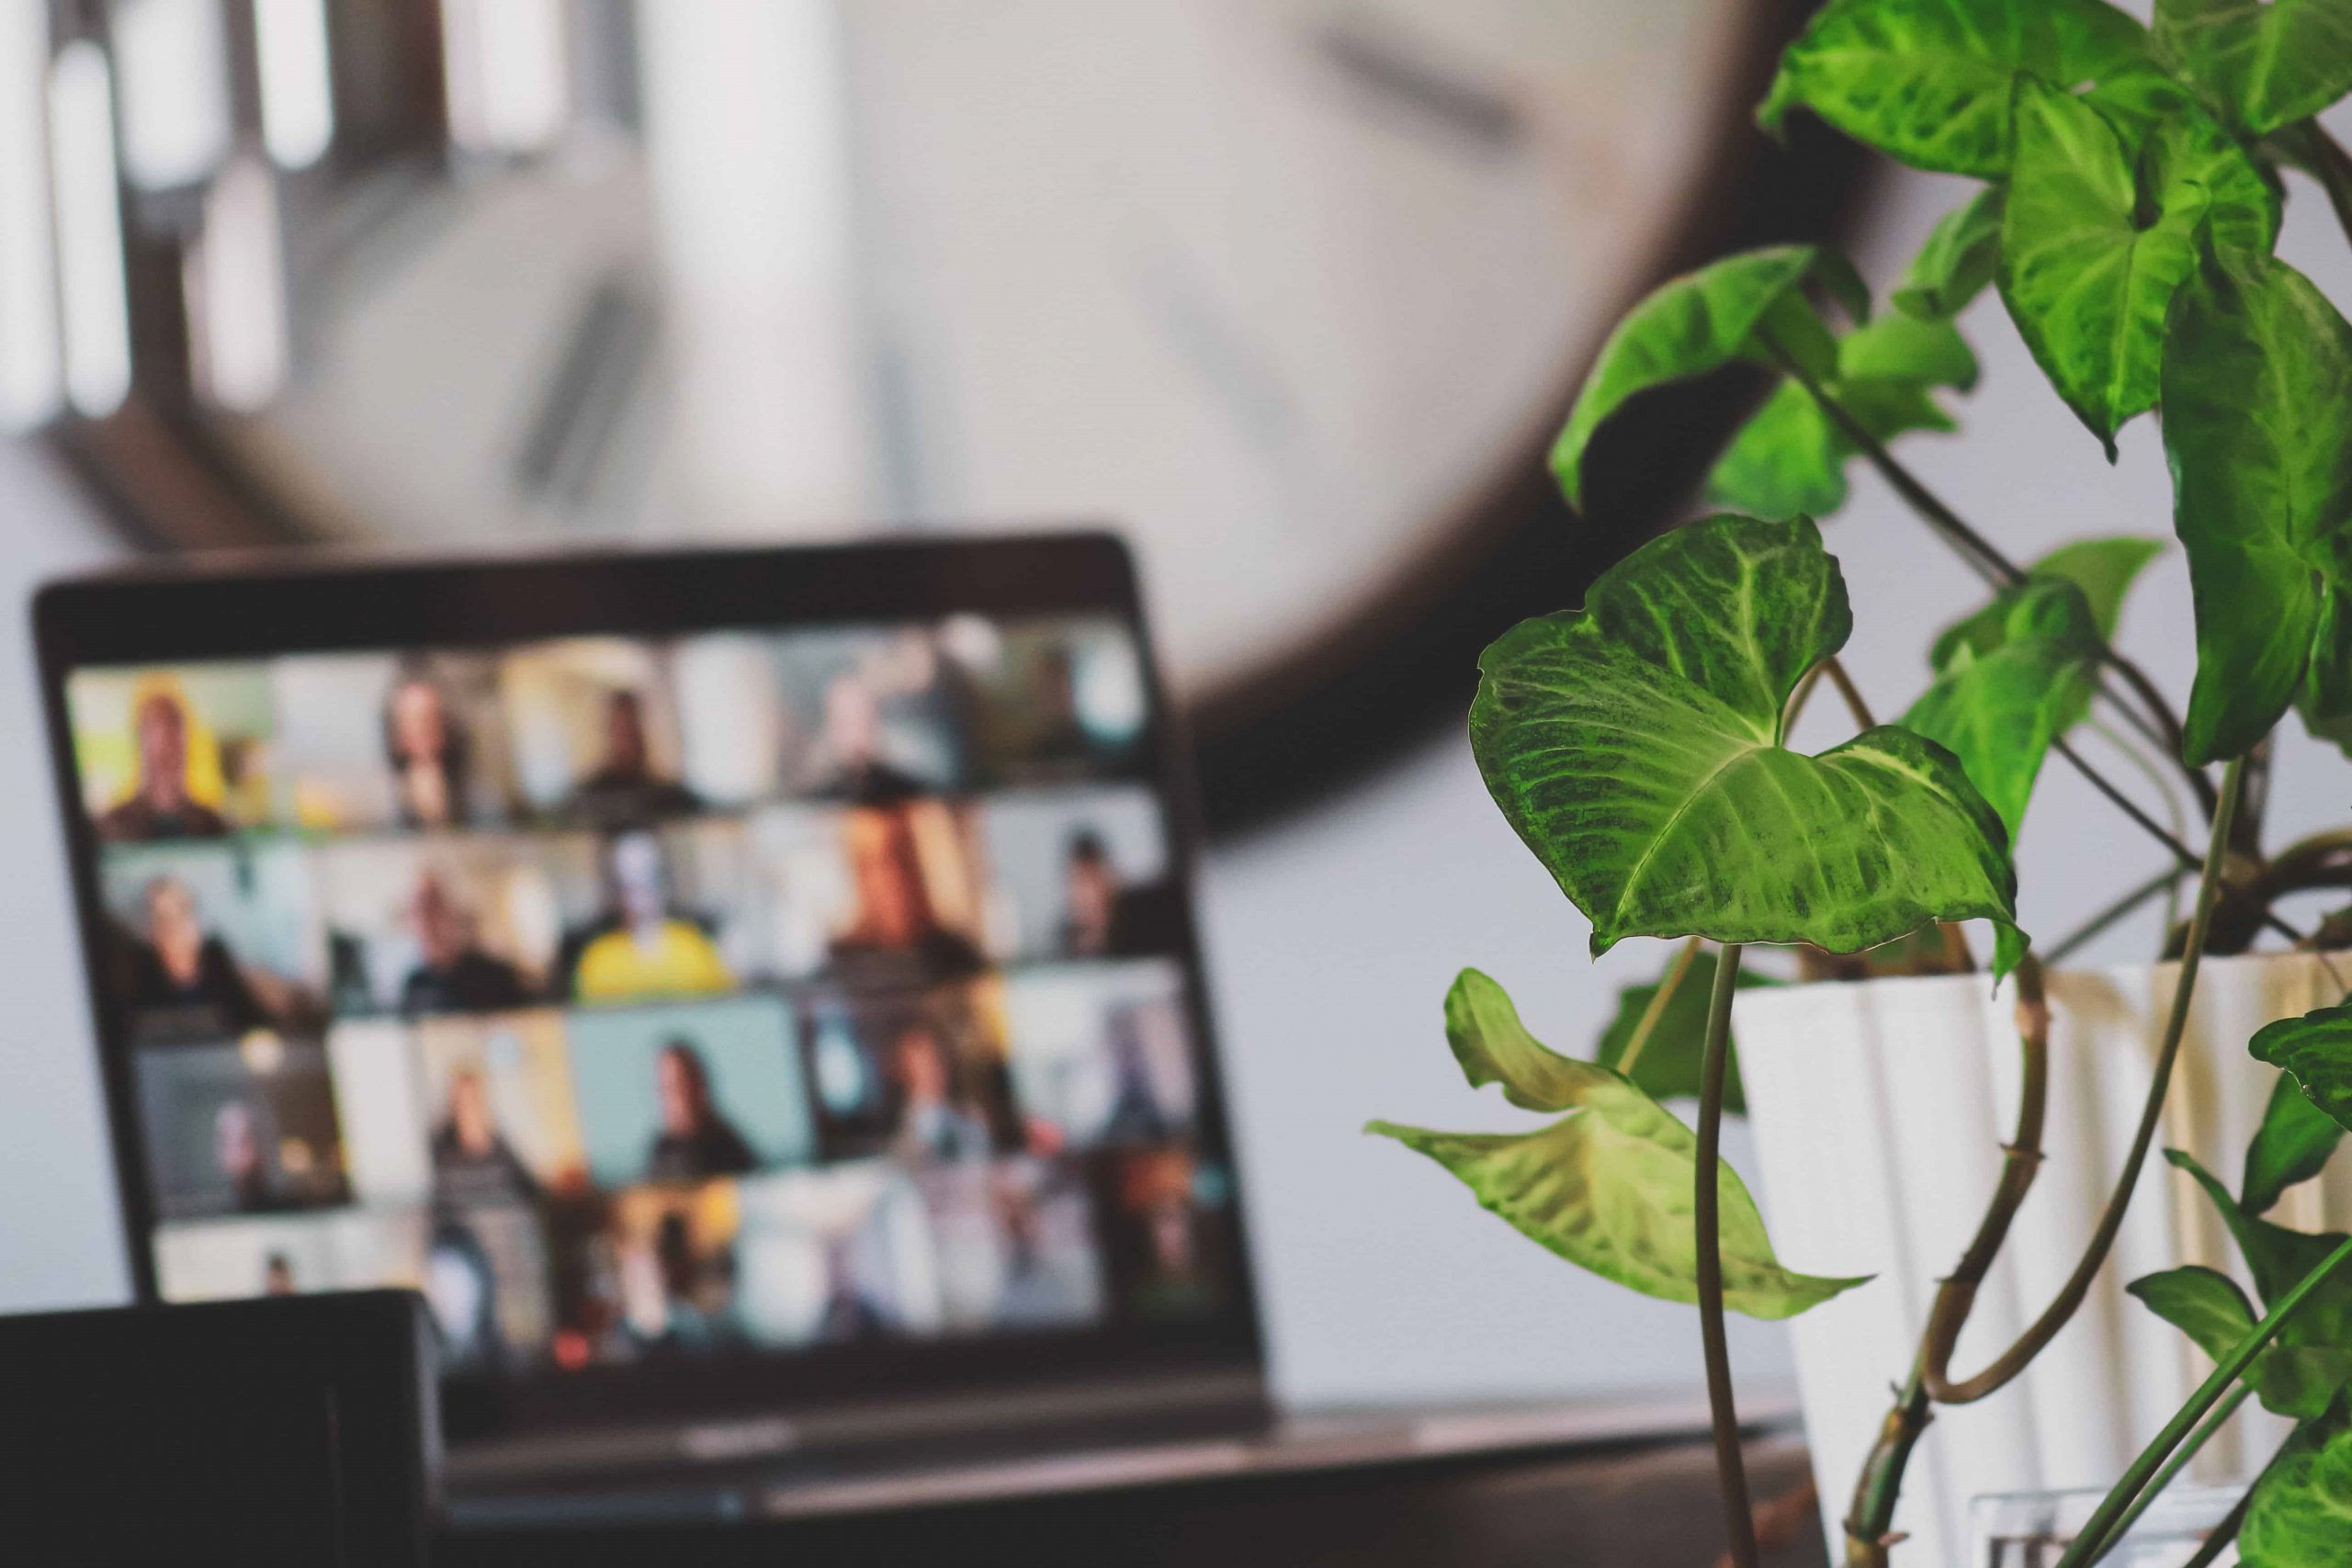 Work from Where? 3 Leadership Practices that Support Employees Working From Home, Work, or Somewhere in Between